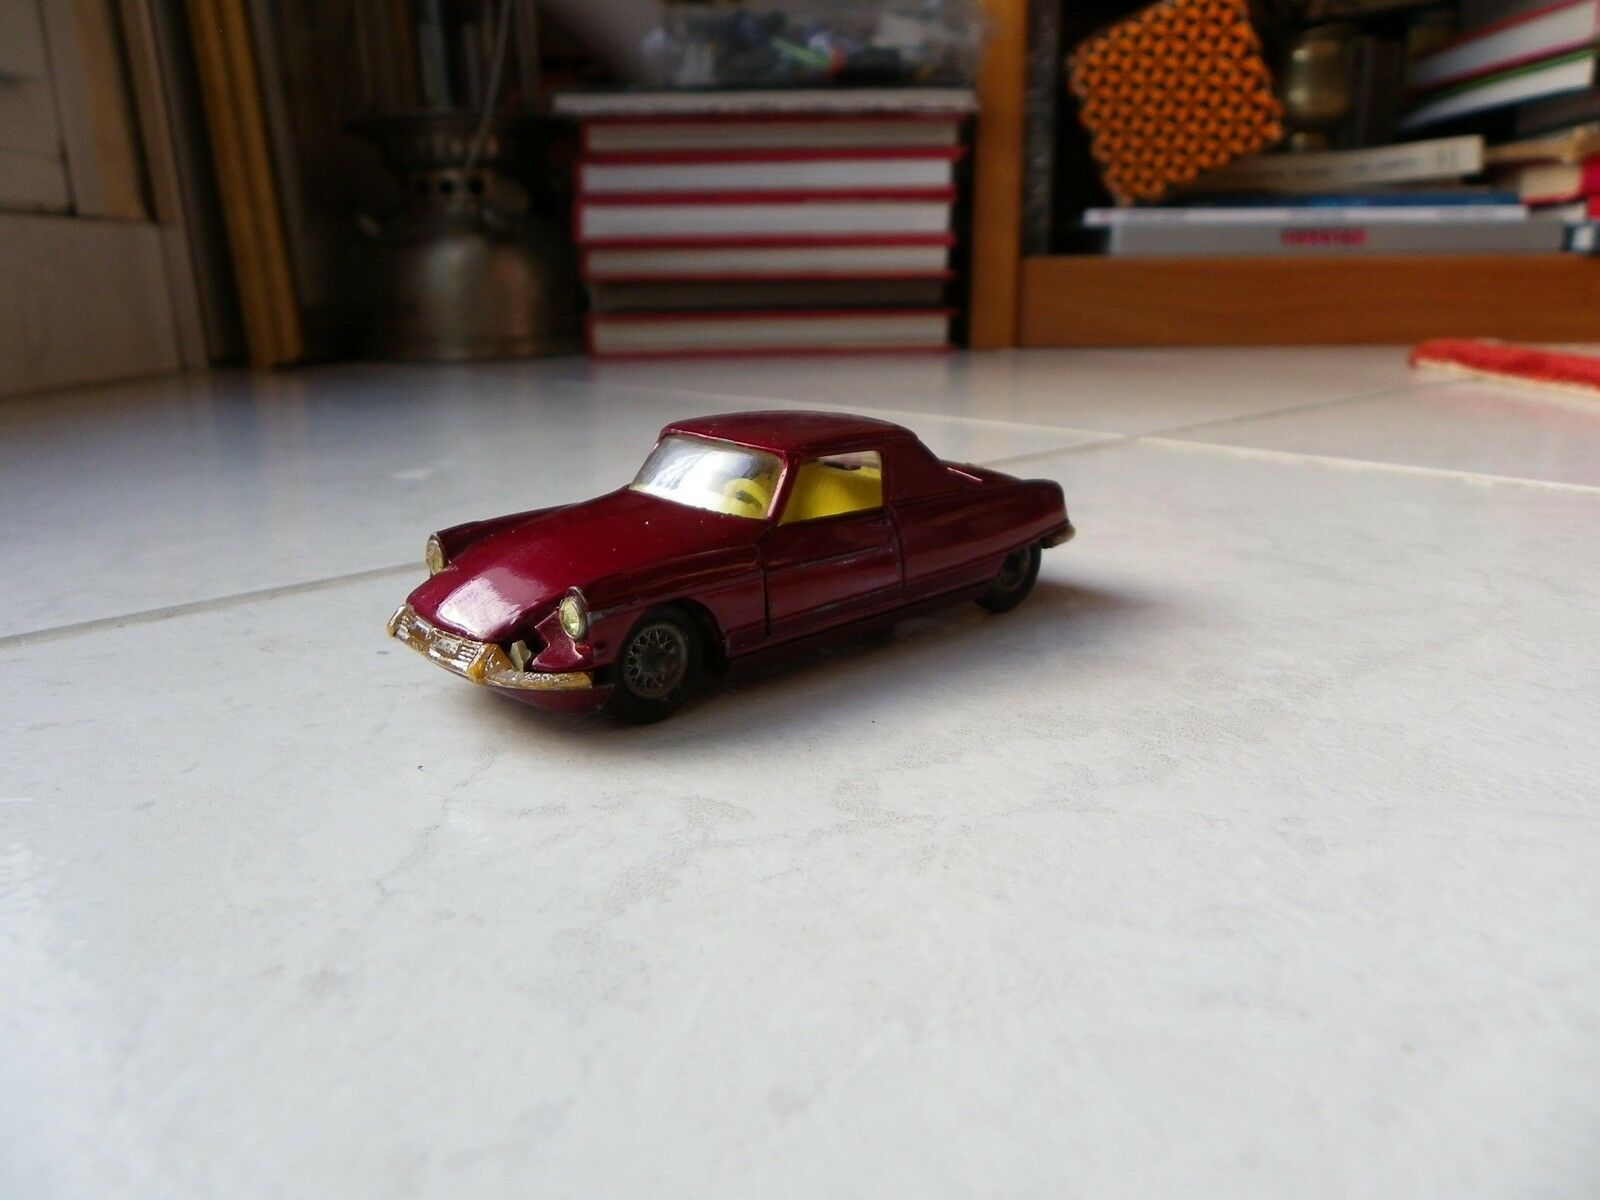 Citroen DS the Dandy Coupé Henri Chapron Corgi Toys 1 43 toy miniature old